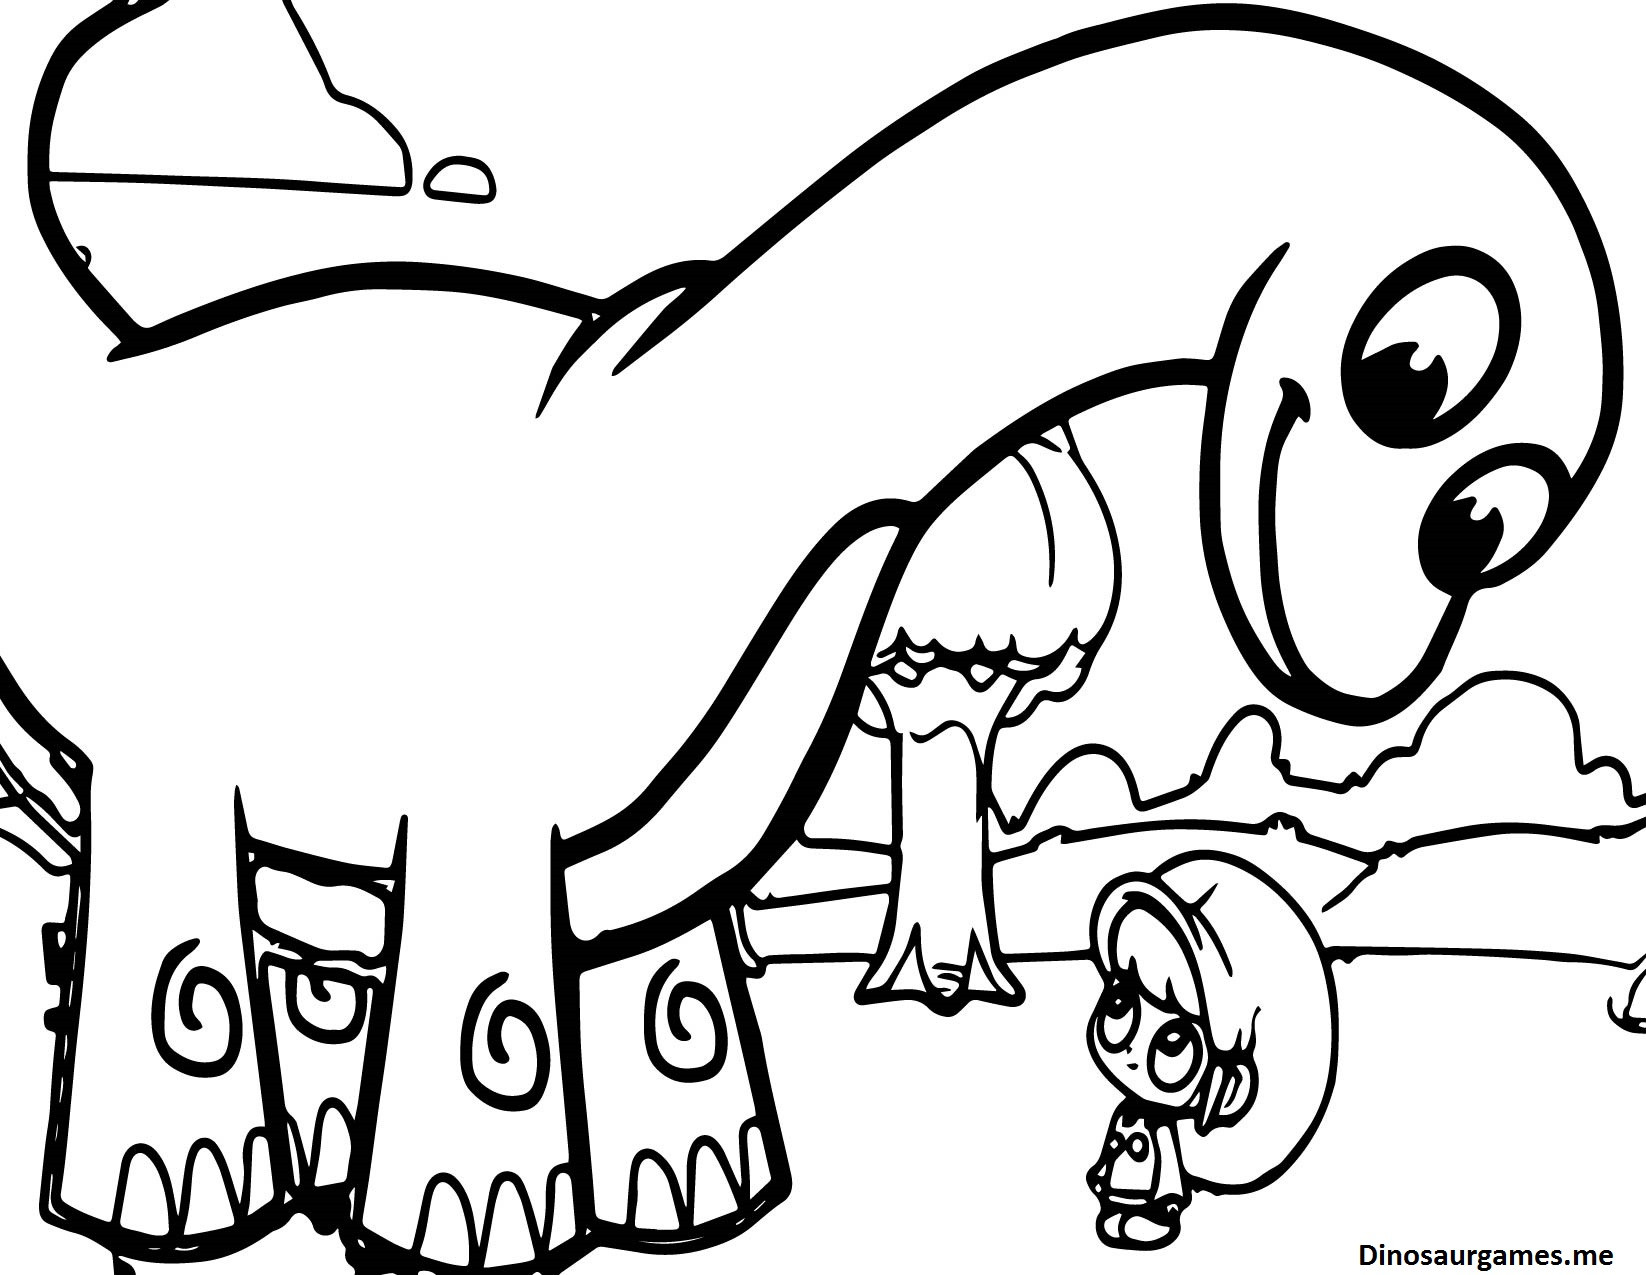 coloring dinosaurs coloring pages dinosaur free printable coloring pages coloring dinosaurs 1 2